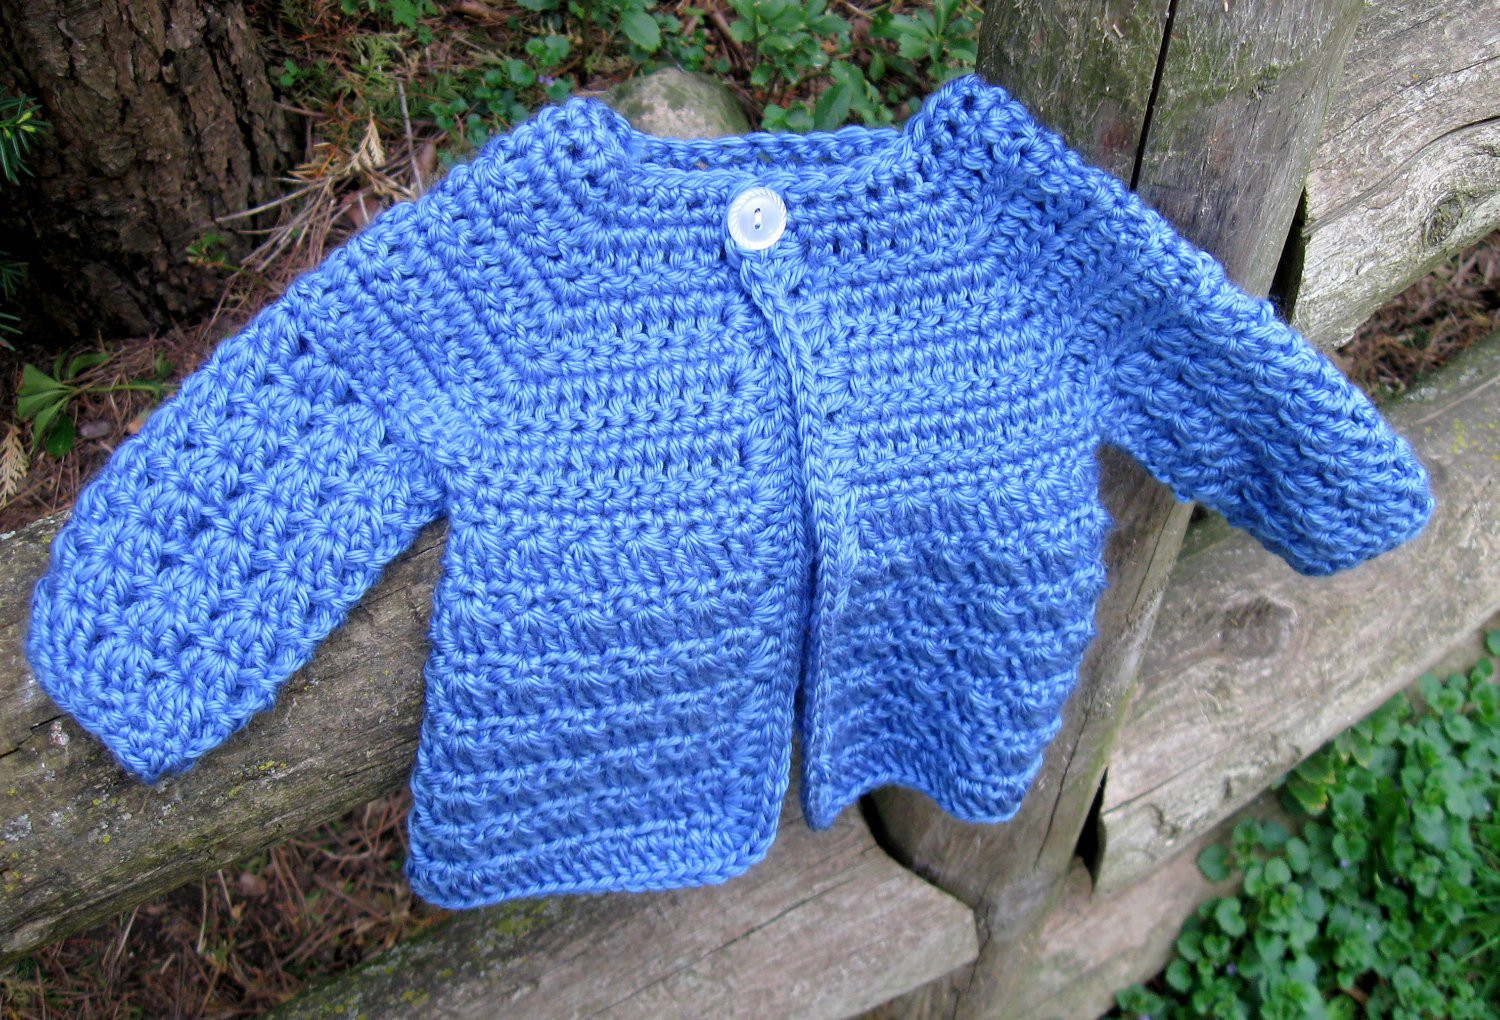 Free Crochet Patterns for Babies Cardigans Luxury Crochet Patterns Baby Sweater Of Superb 45 Models Free Crochet Patterns for Babies Cardigans